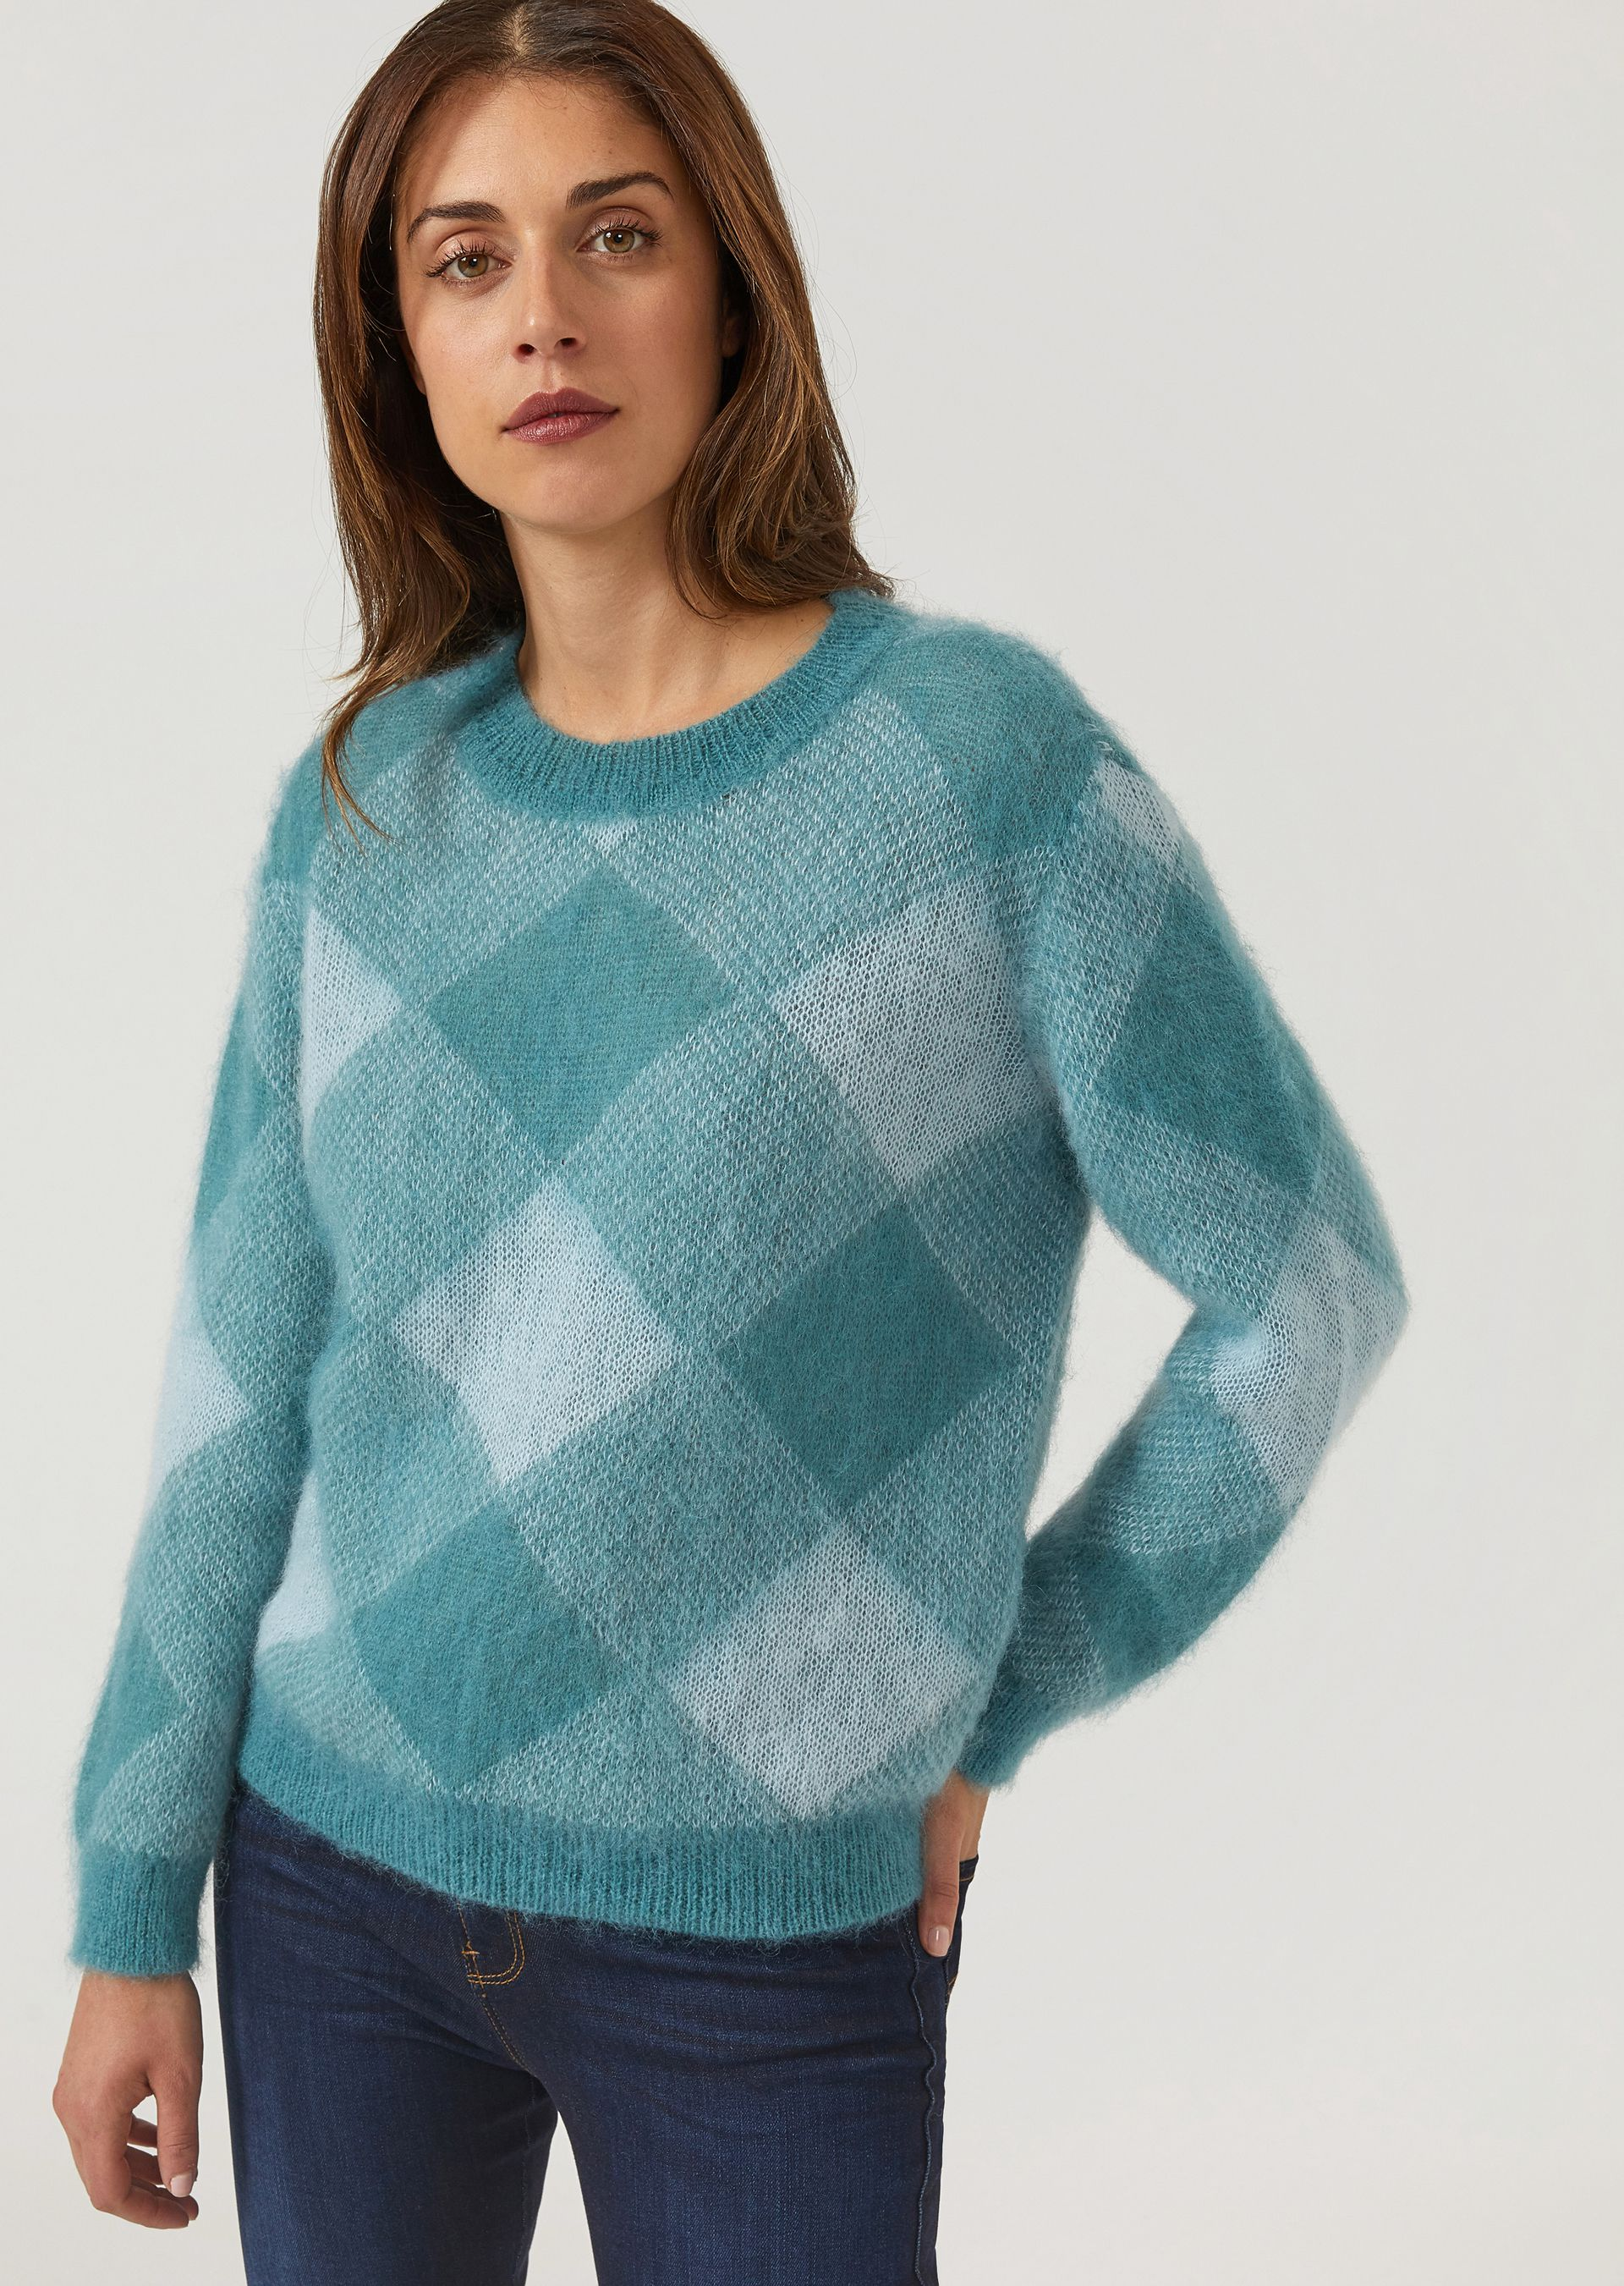 Sweaters - Item 39895932 in Green from ARMANI.COM